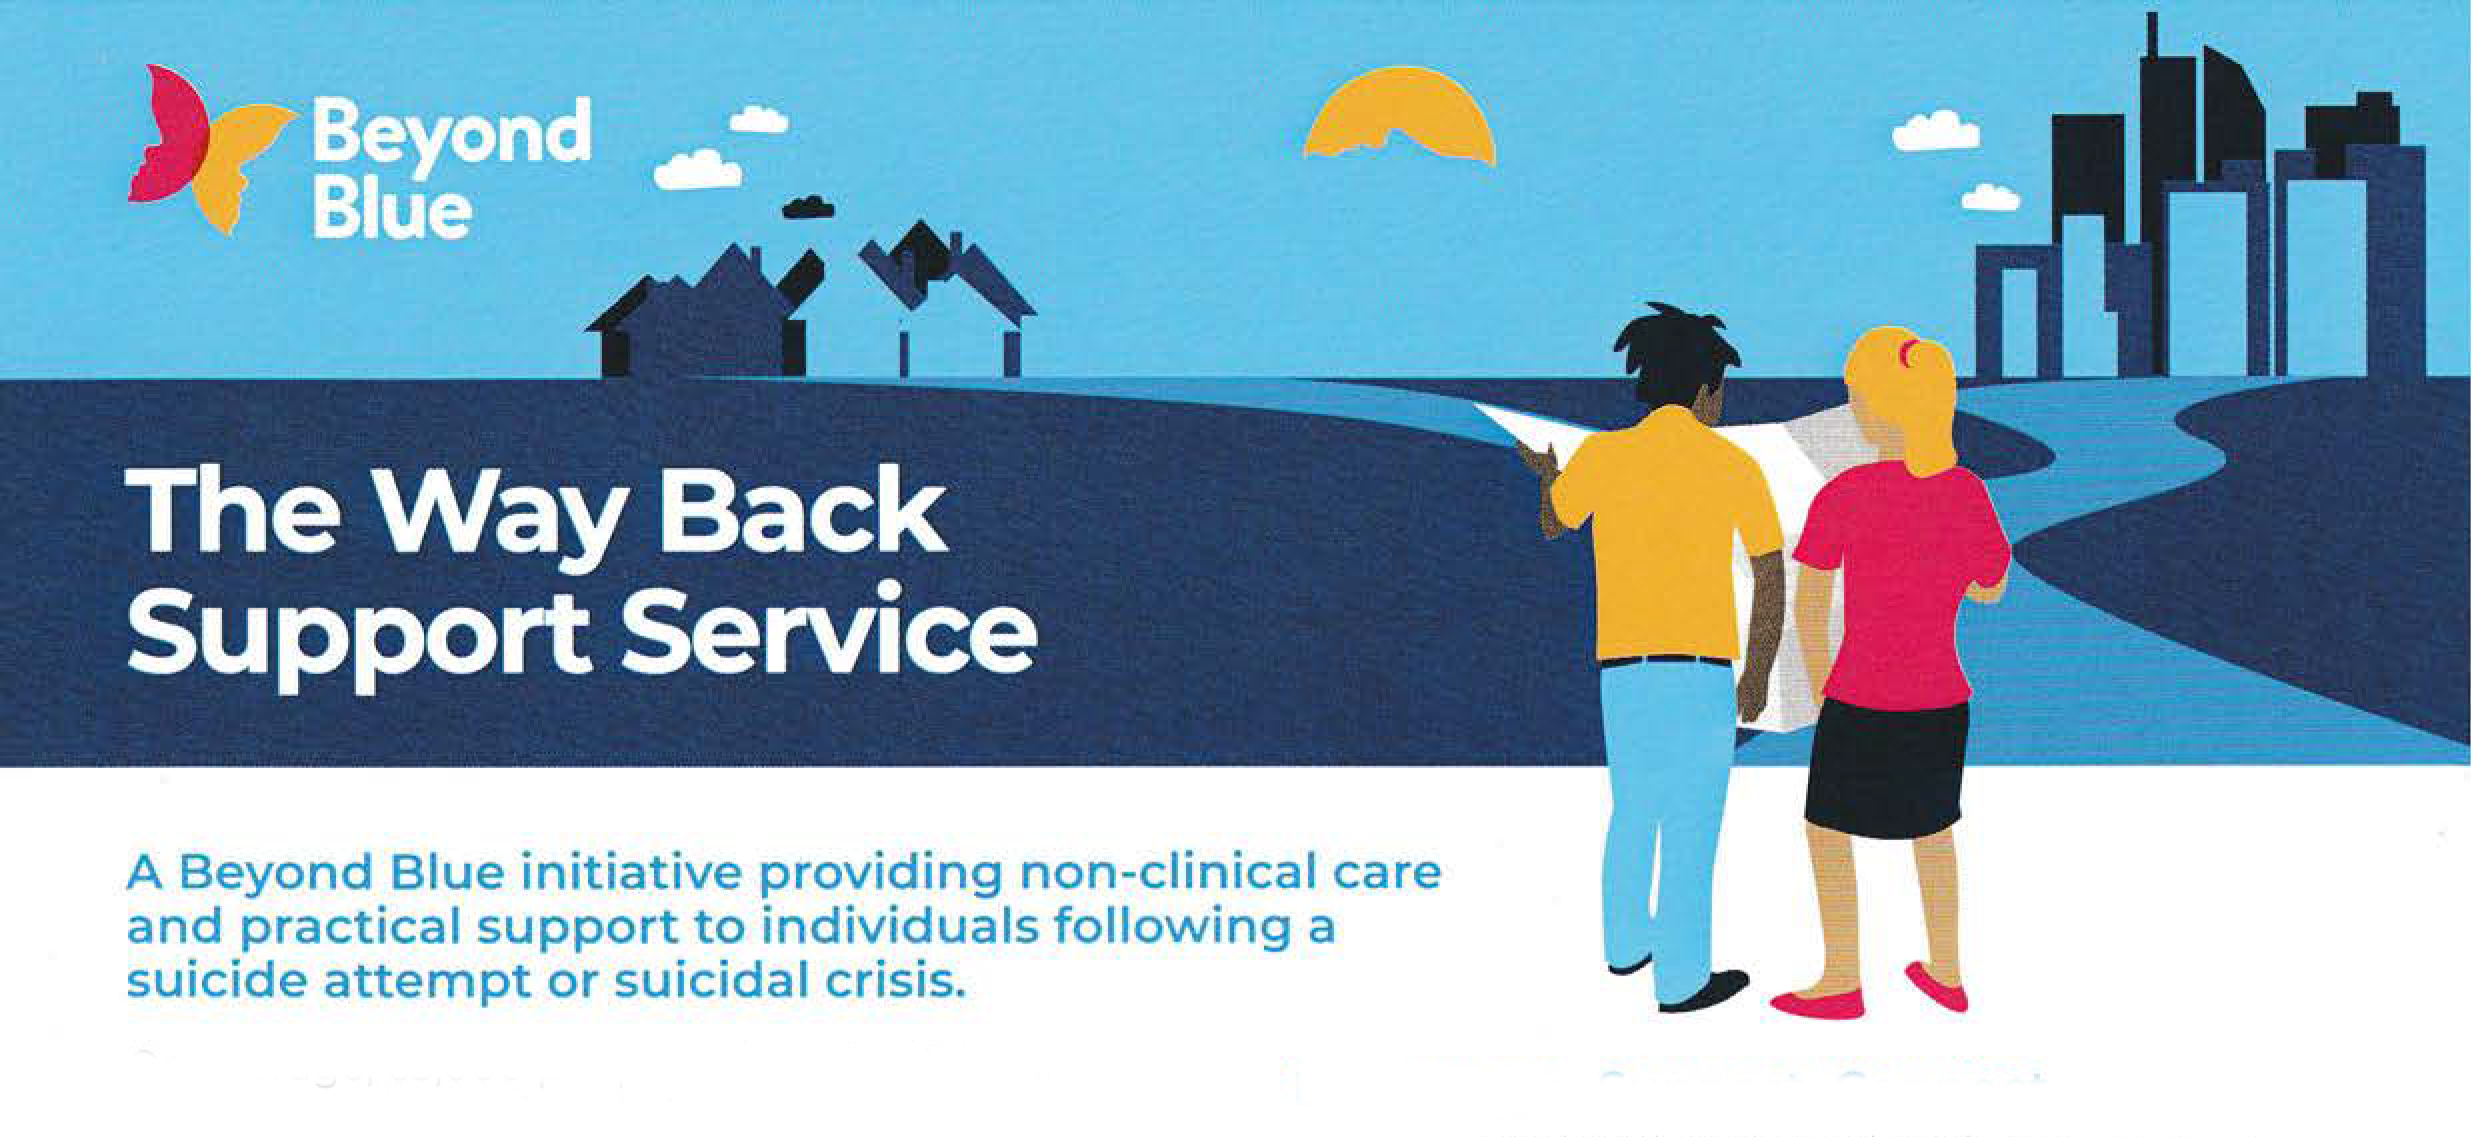 The Way Back Support Service